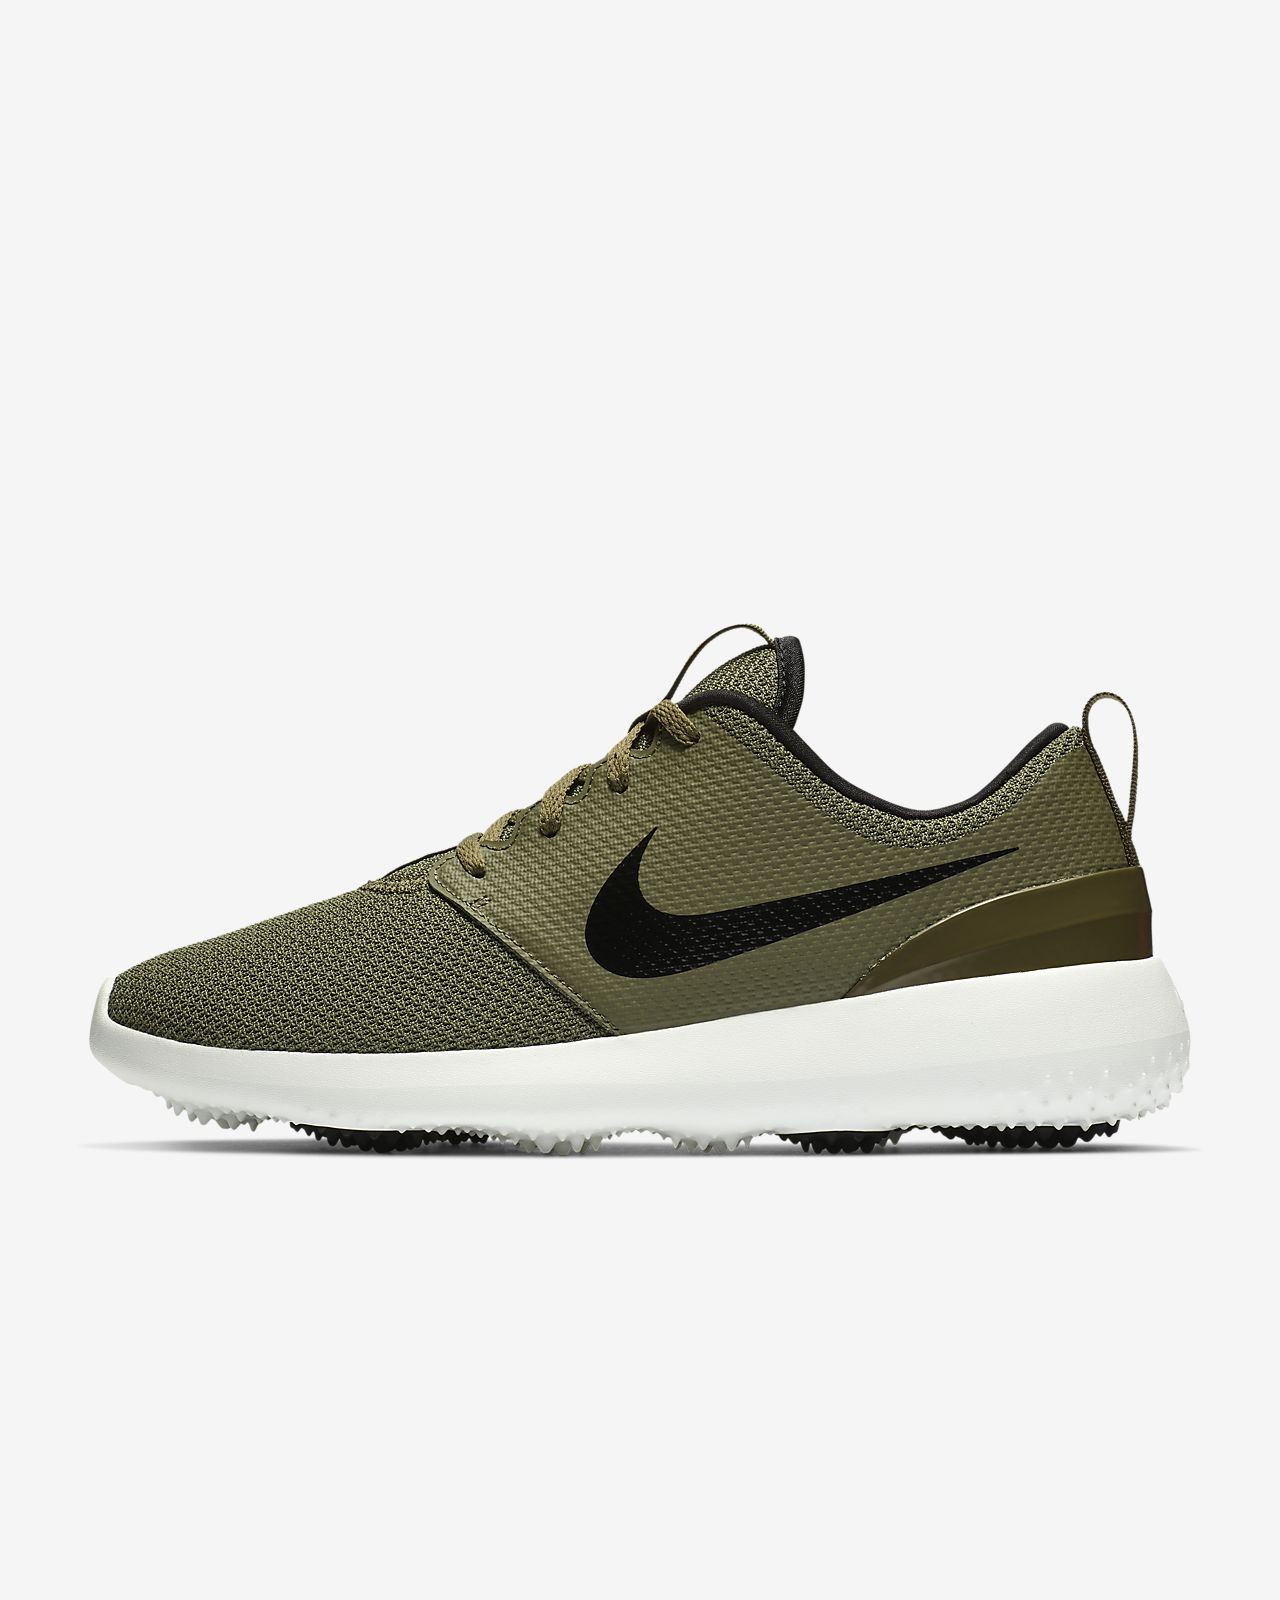 c195342a960d Nike Roshe G Men s Golf Shoe. Nike.com SA